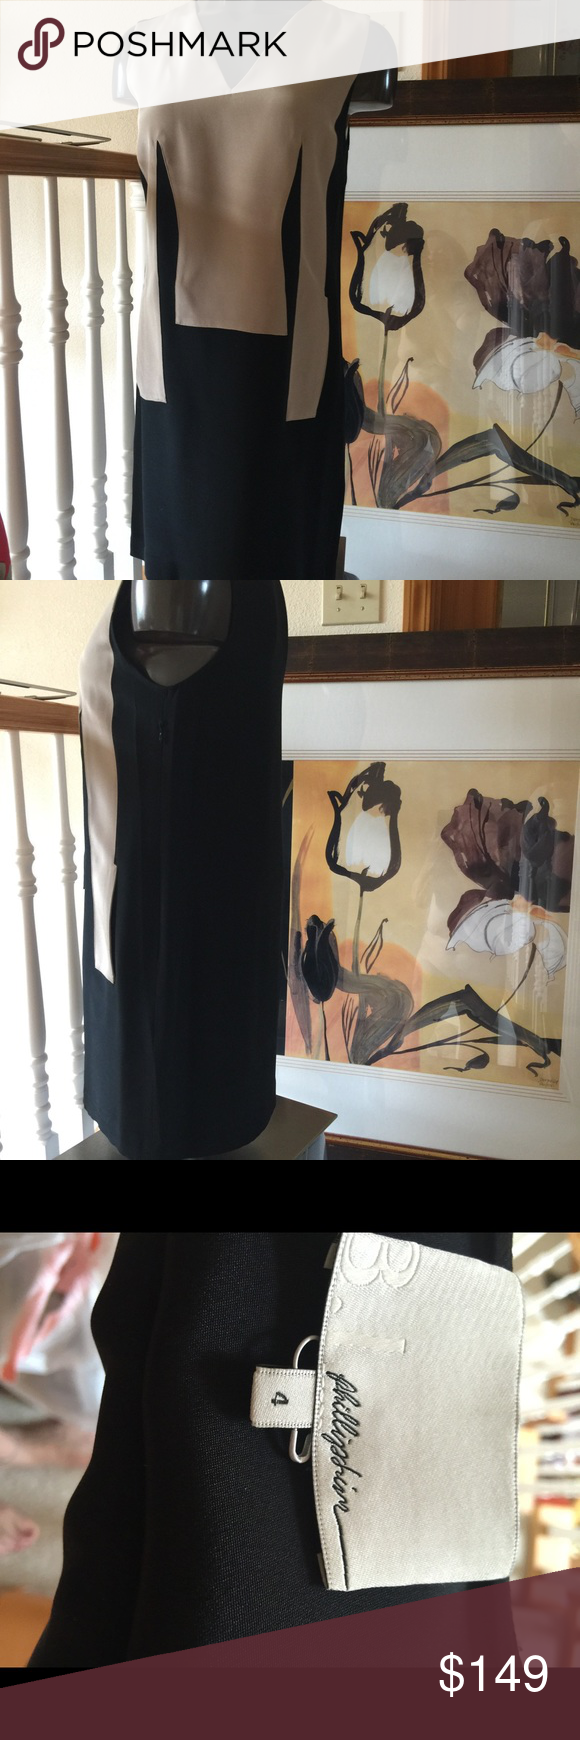 Phillip Lim Silk Dress size 4 Absolutely Gorgeous silk dress from Nordstrom. Very High End and Worn one time. Phillip Lim Dresses Mini